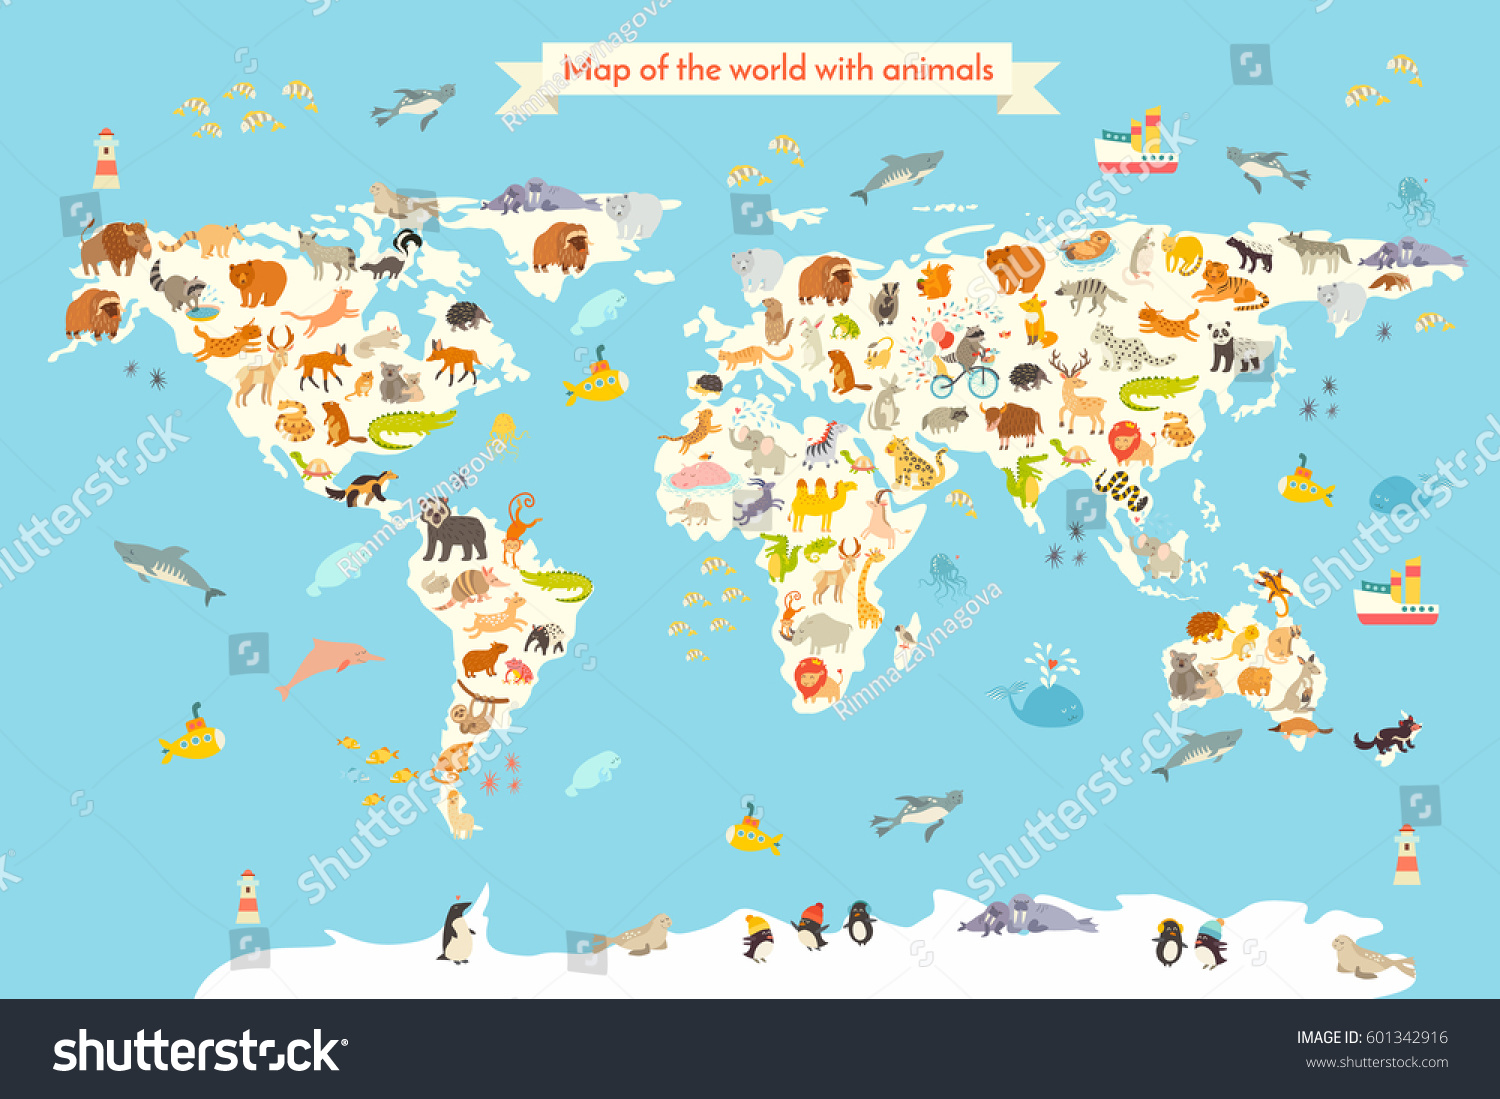 Map animal kid continent world animated stock vector 601342916 map animal for kid continent of world animated childs map vector illustration animals gumiabroncs Choice Image